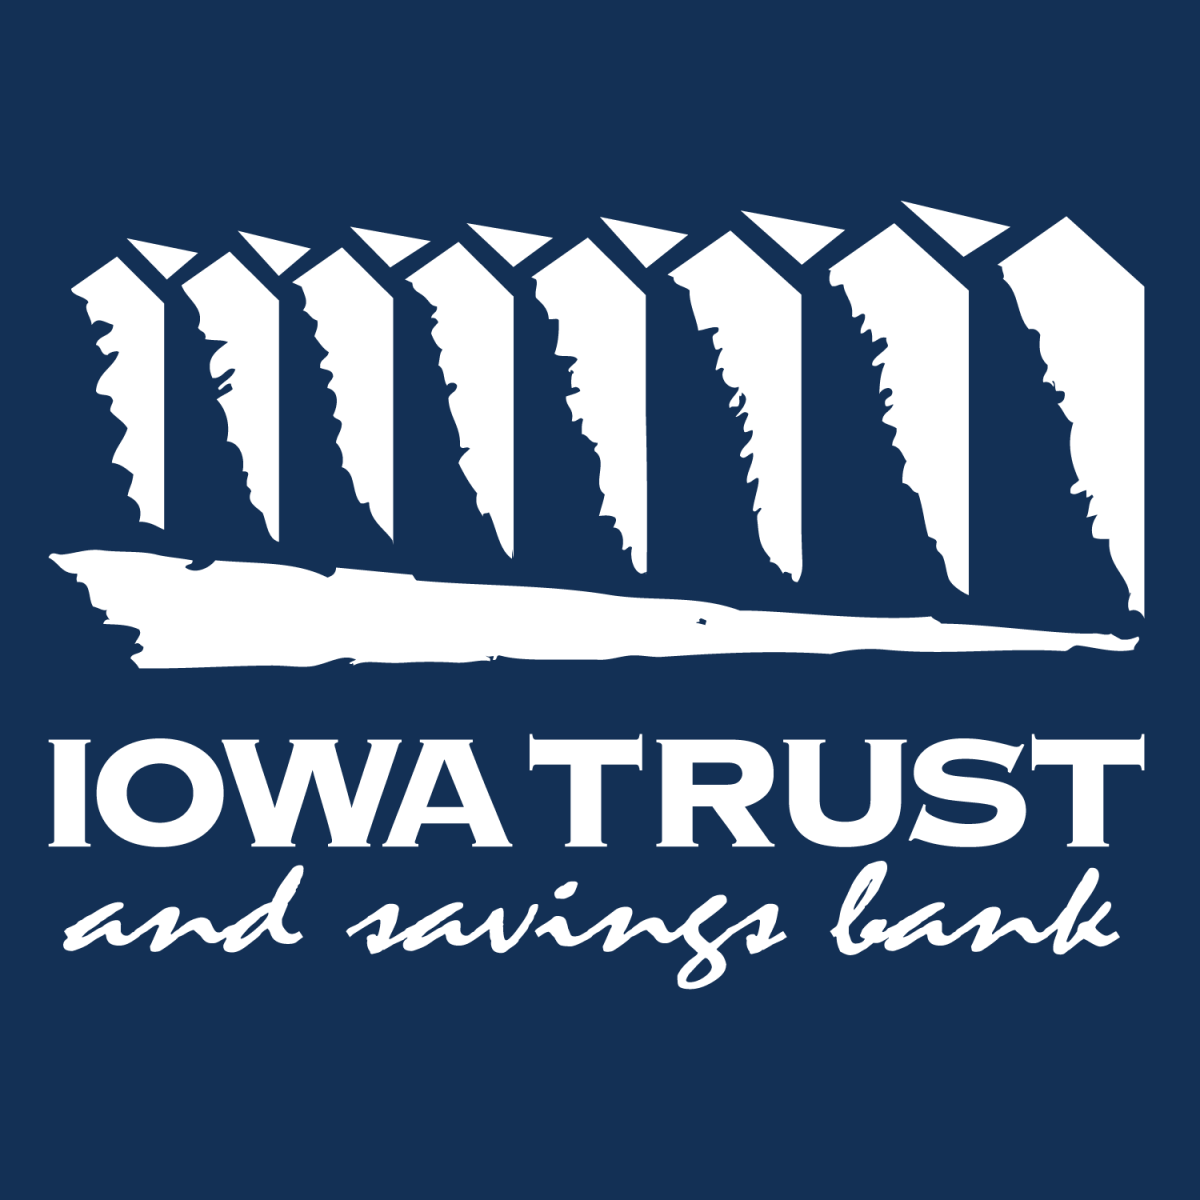 Iowa Trust & Saving Bank Slide Image